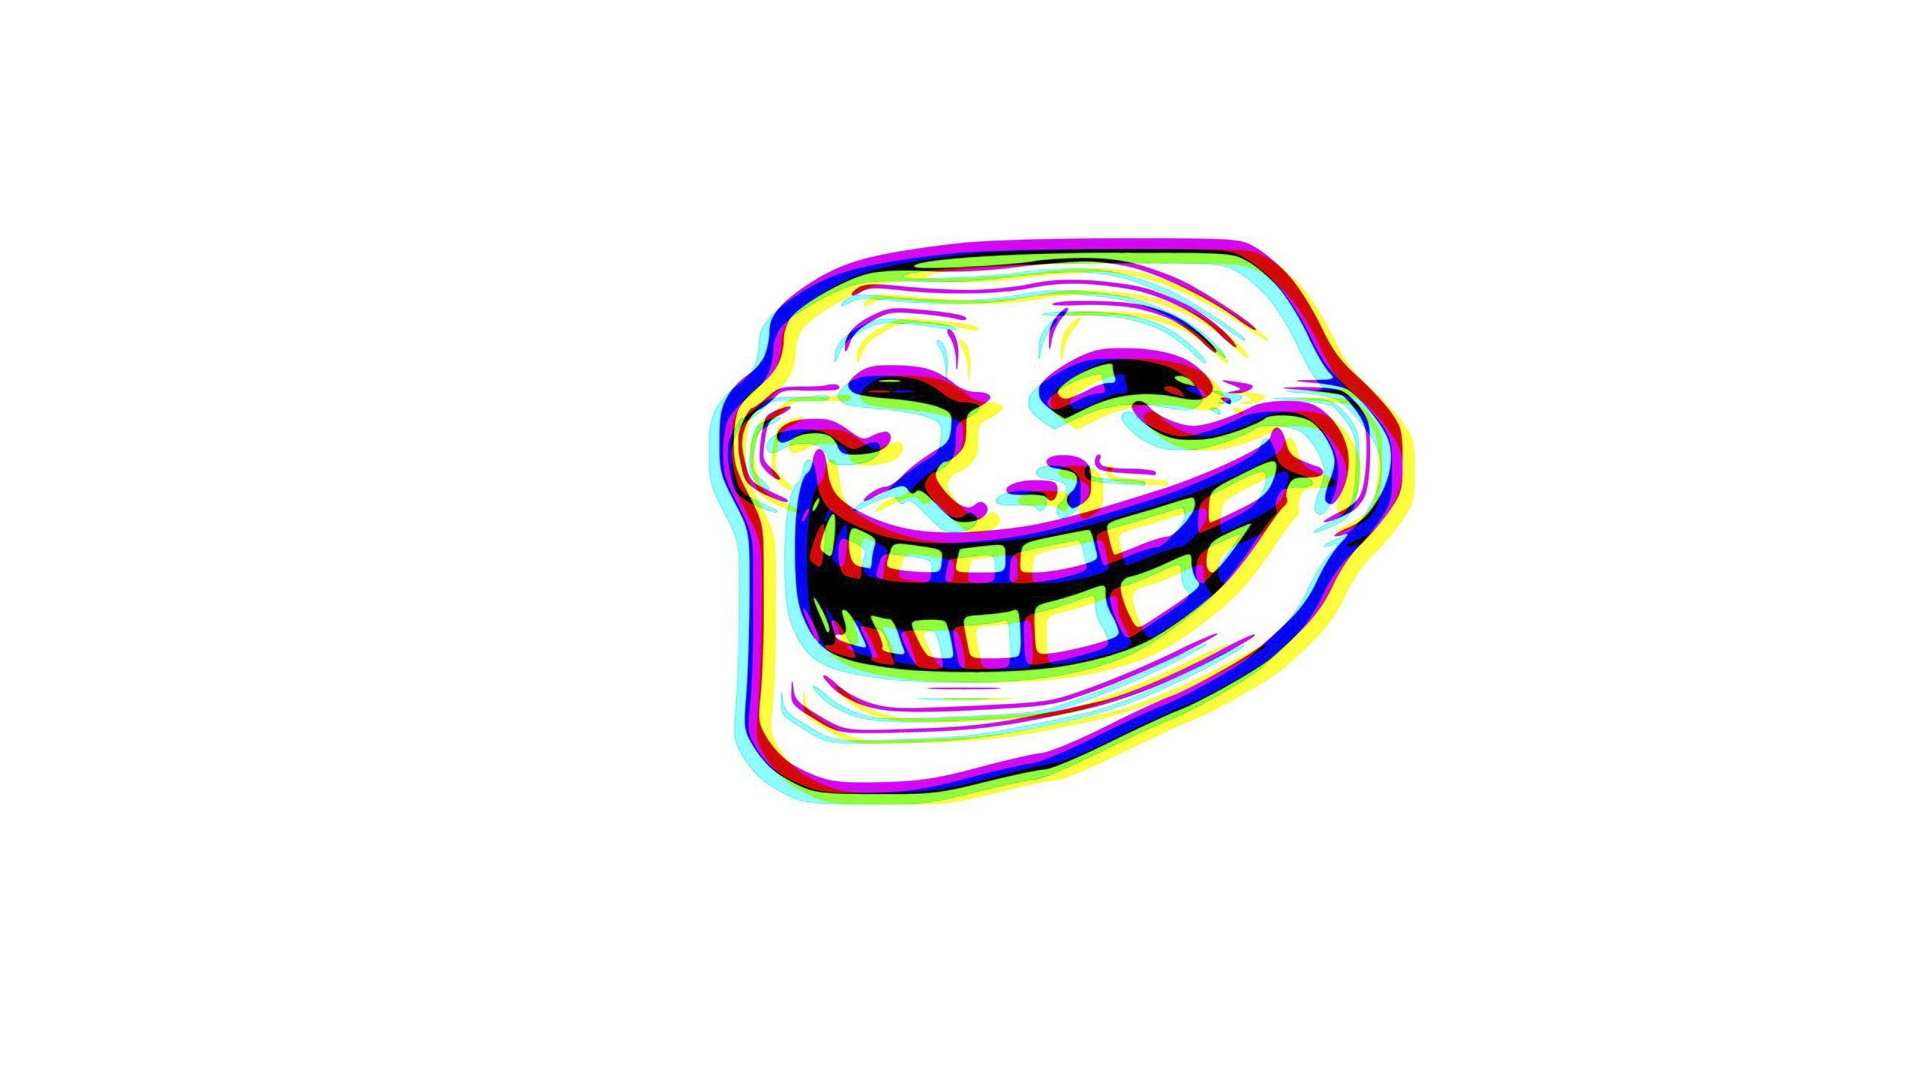 Download wallpaper 1920x1080 trollface troll face comic humour troll 3d anaglyph voltagebd Images